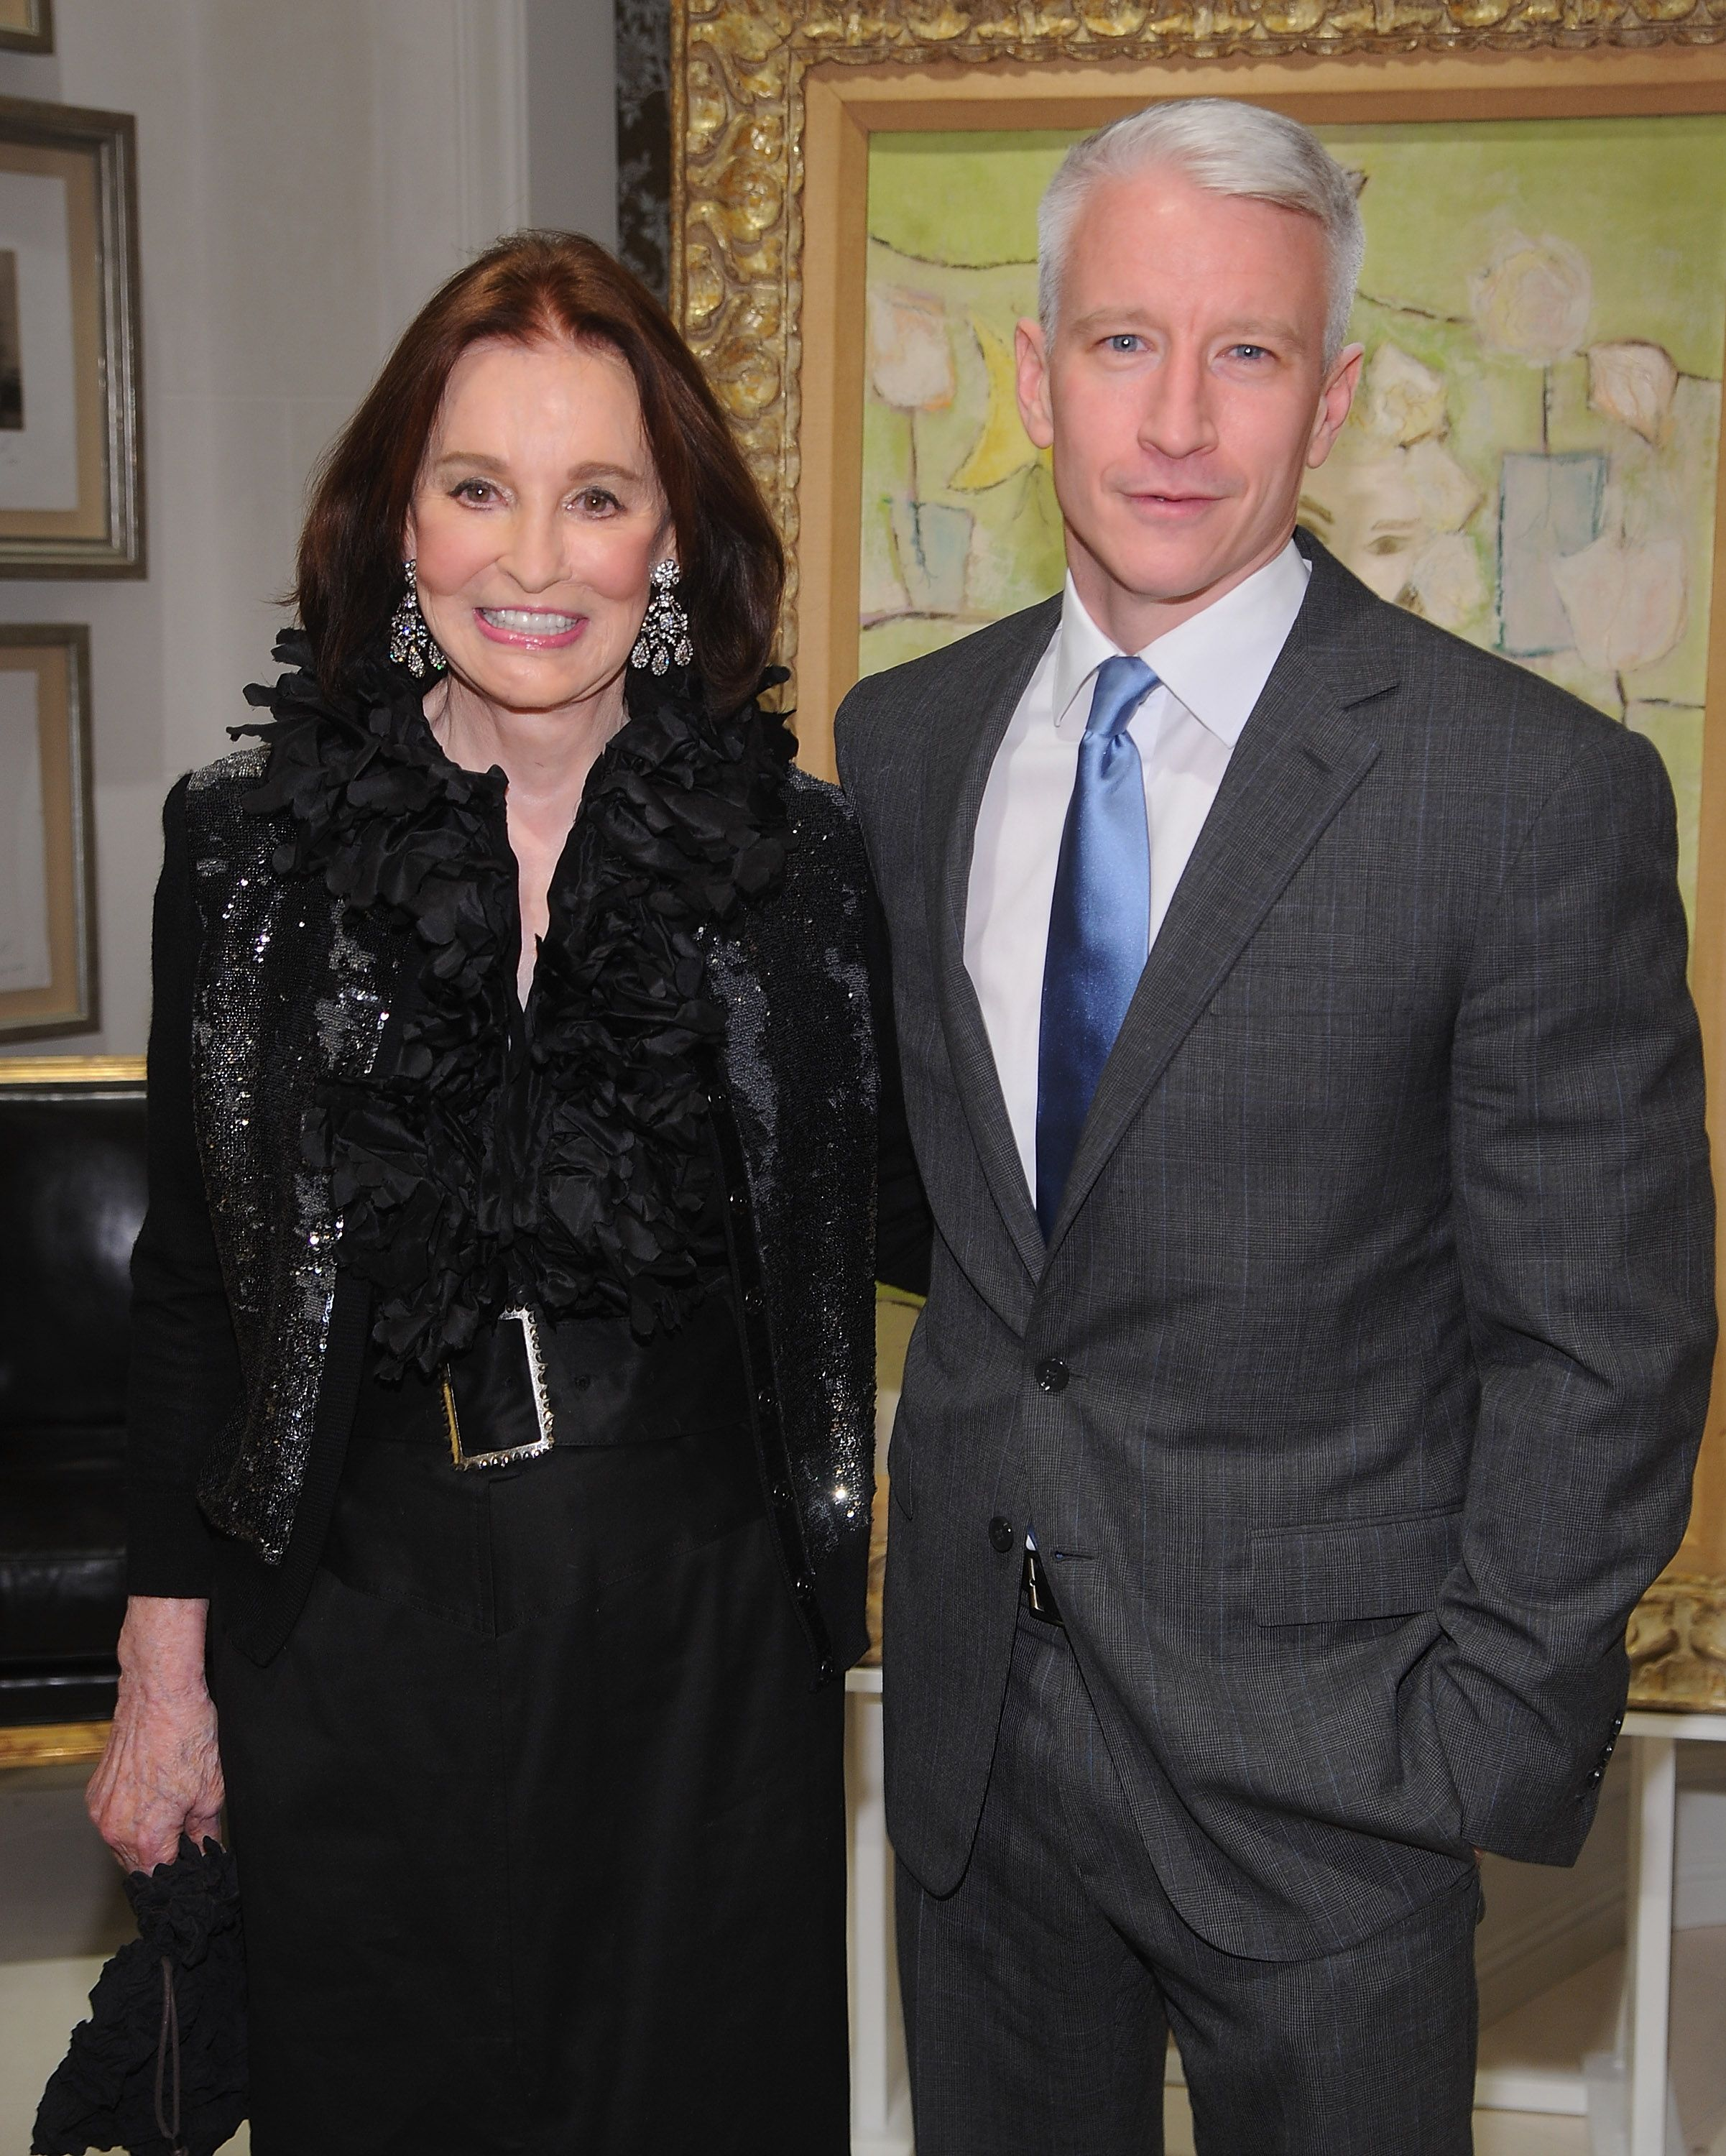 Anderson Cooper Shares a Loving Tribute to Mother Gloria Vanderbilt on Instagram